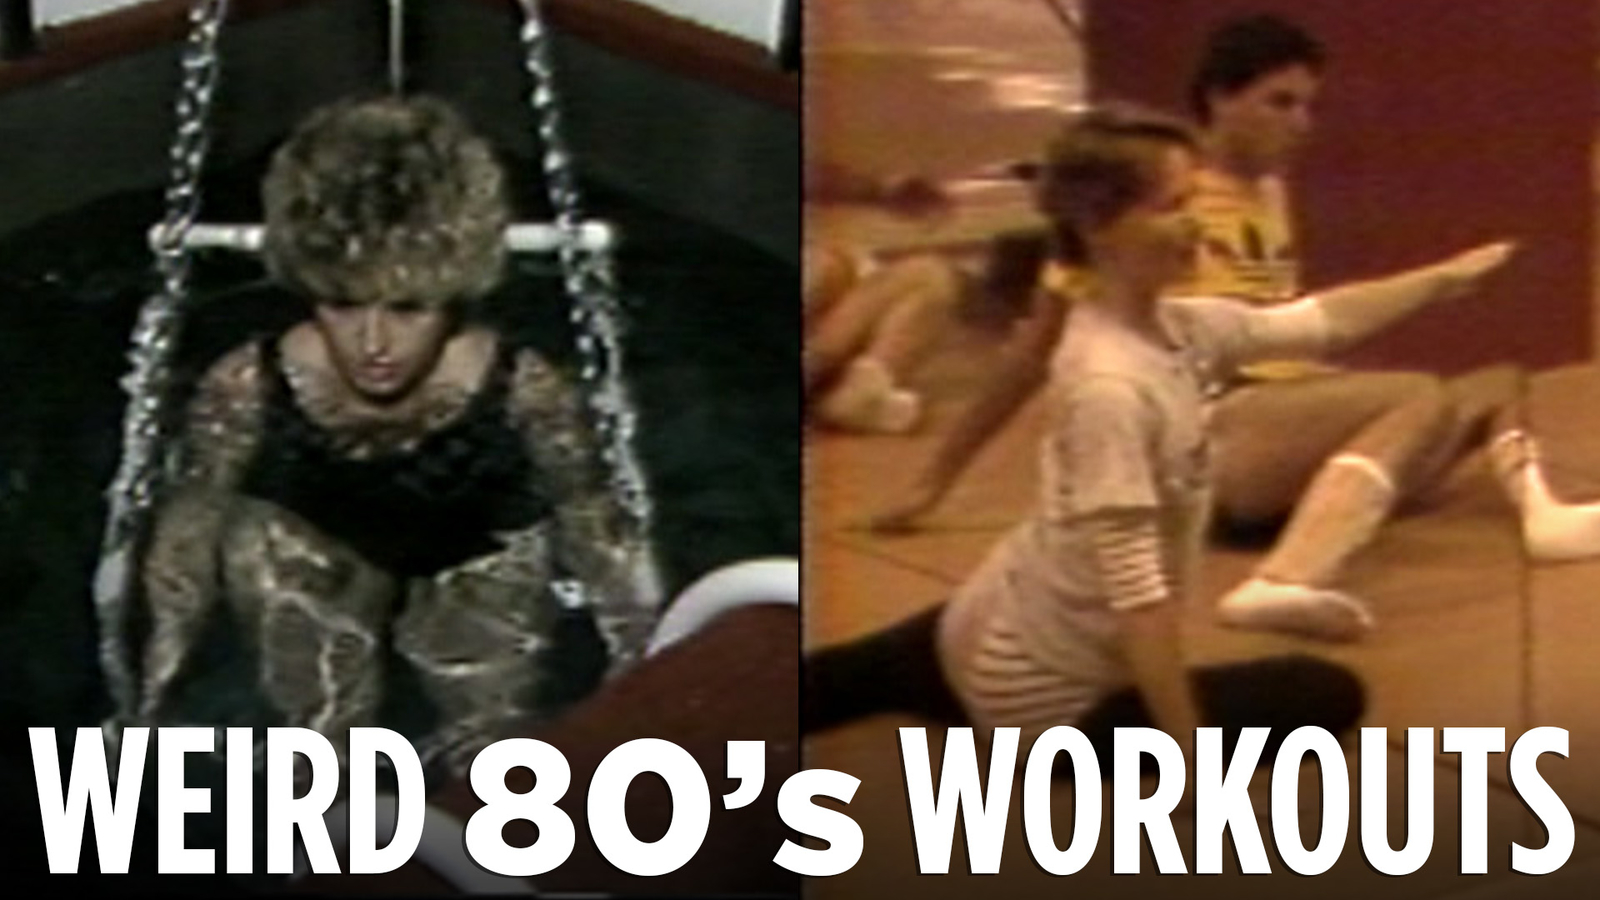 Let's get physical! Tour this 1983 fitness club full of big hair and short shorts